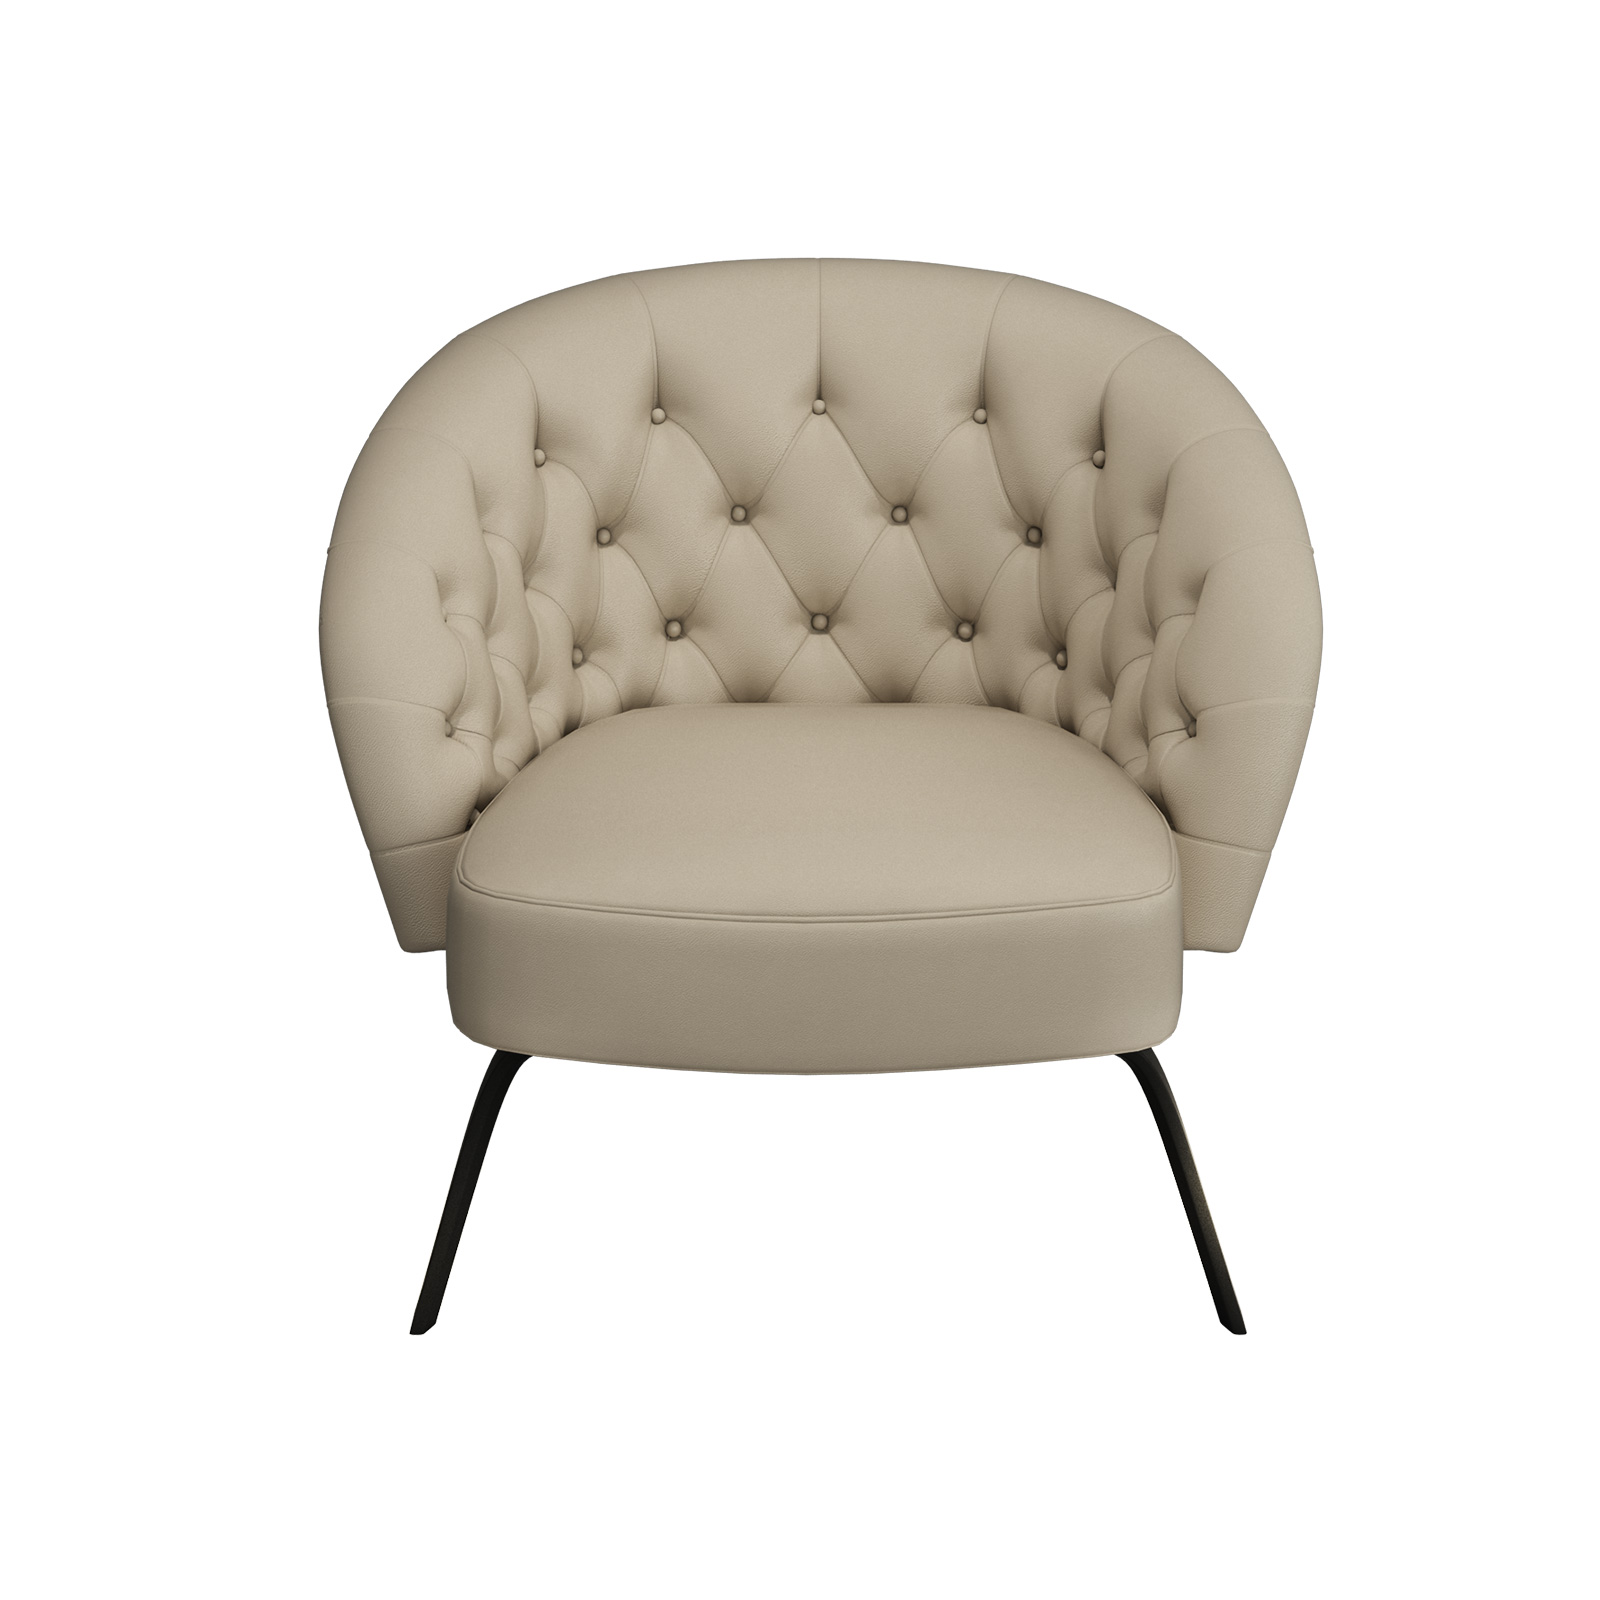 Lfda 010 Hotel Lobby Furniture Of Loose Chairs Used Leather Upholstered With Metal Tube Legs